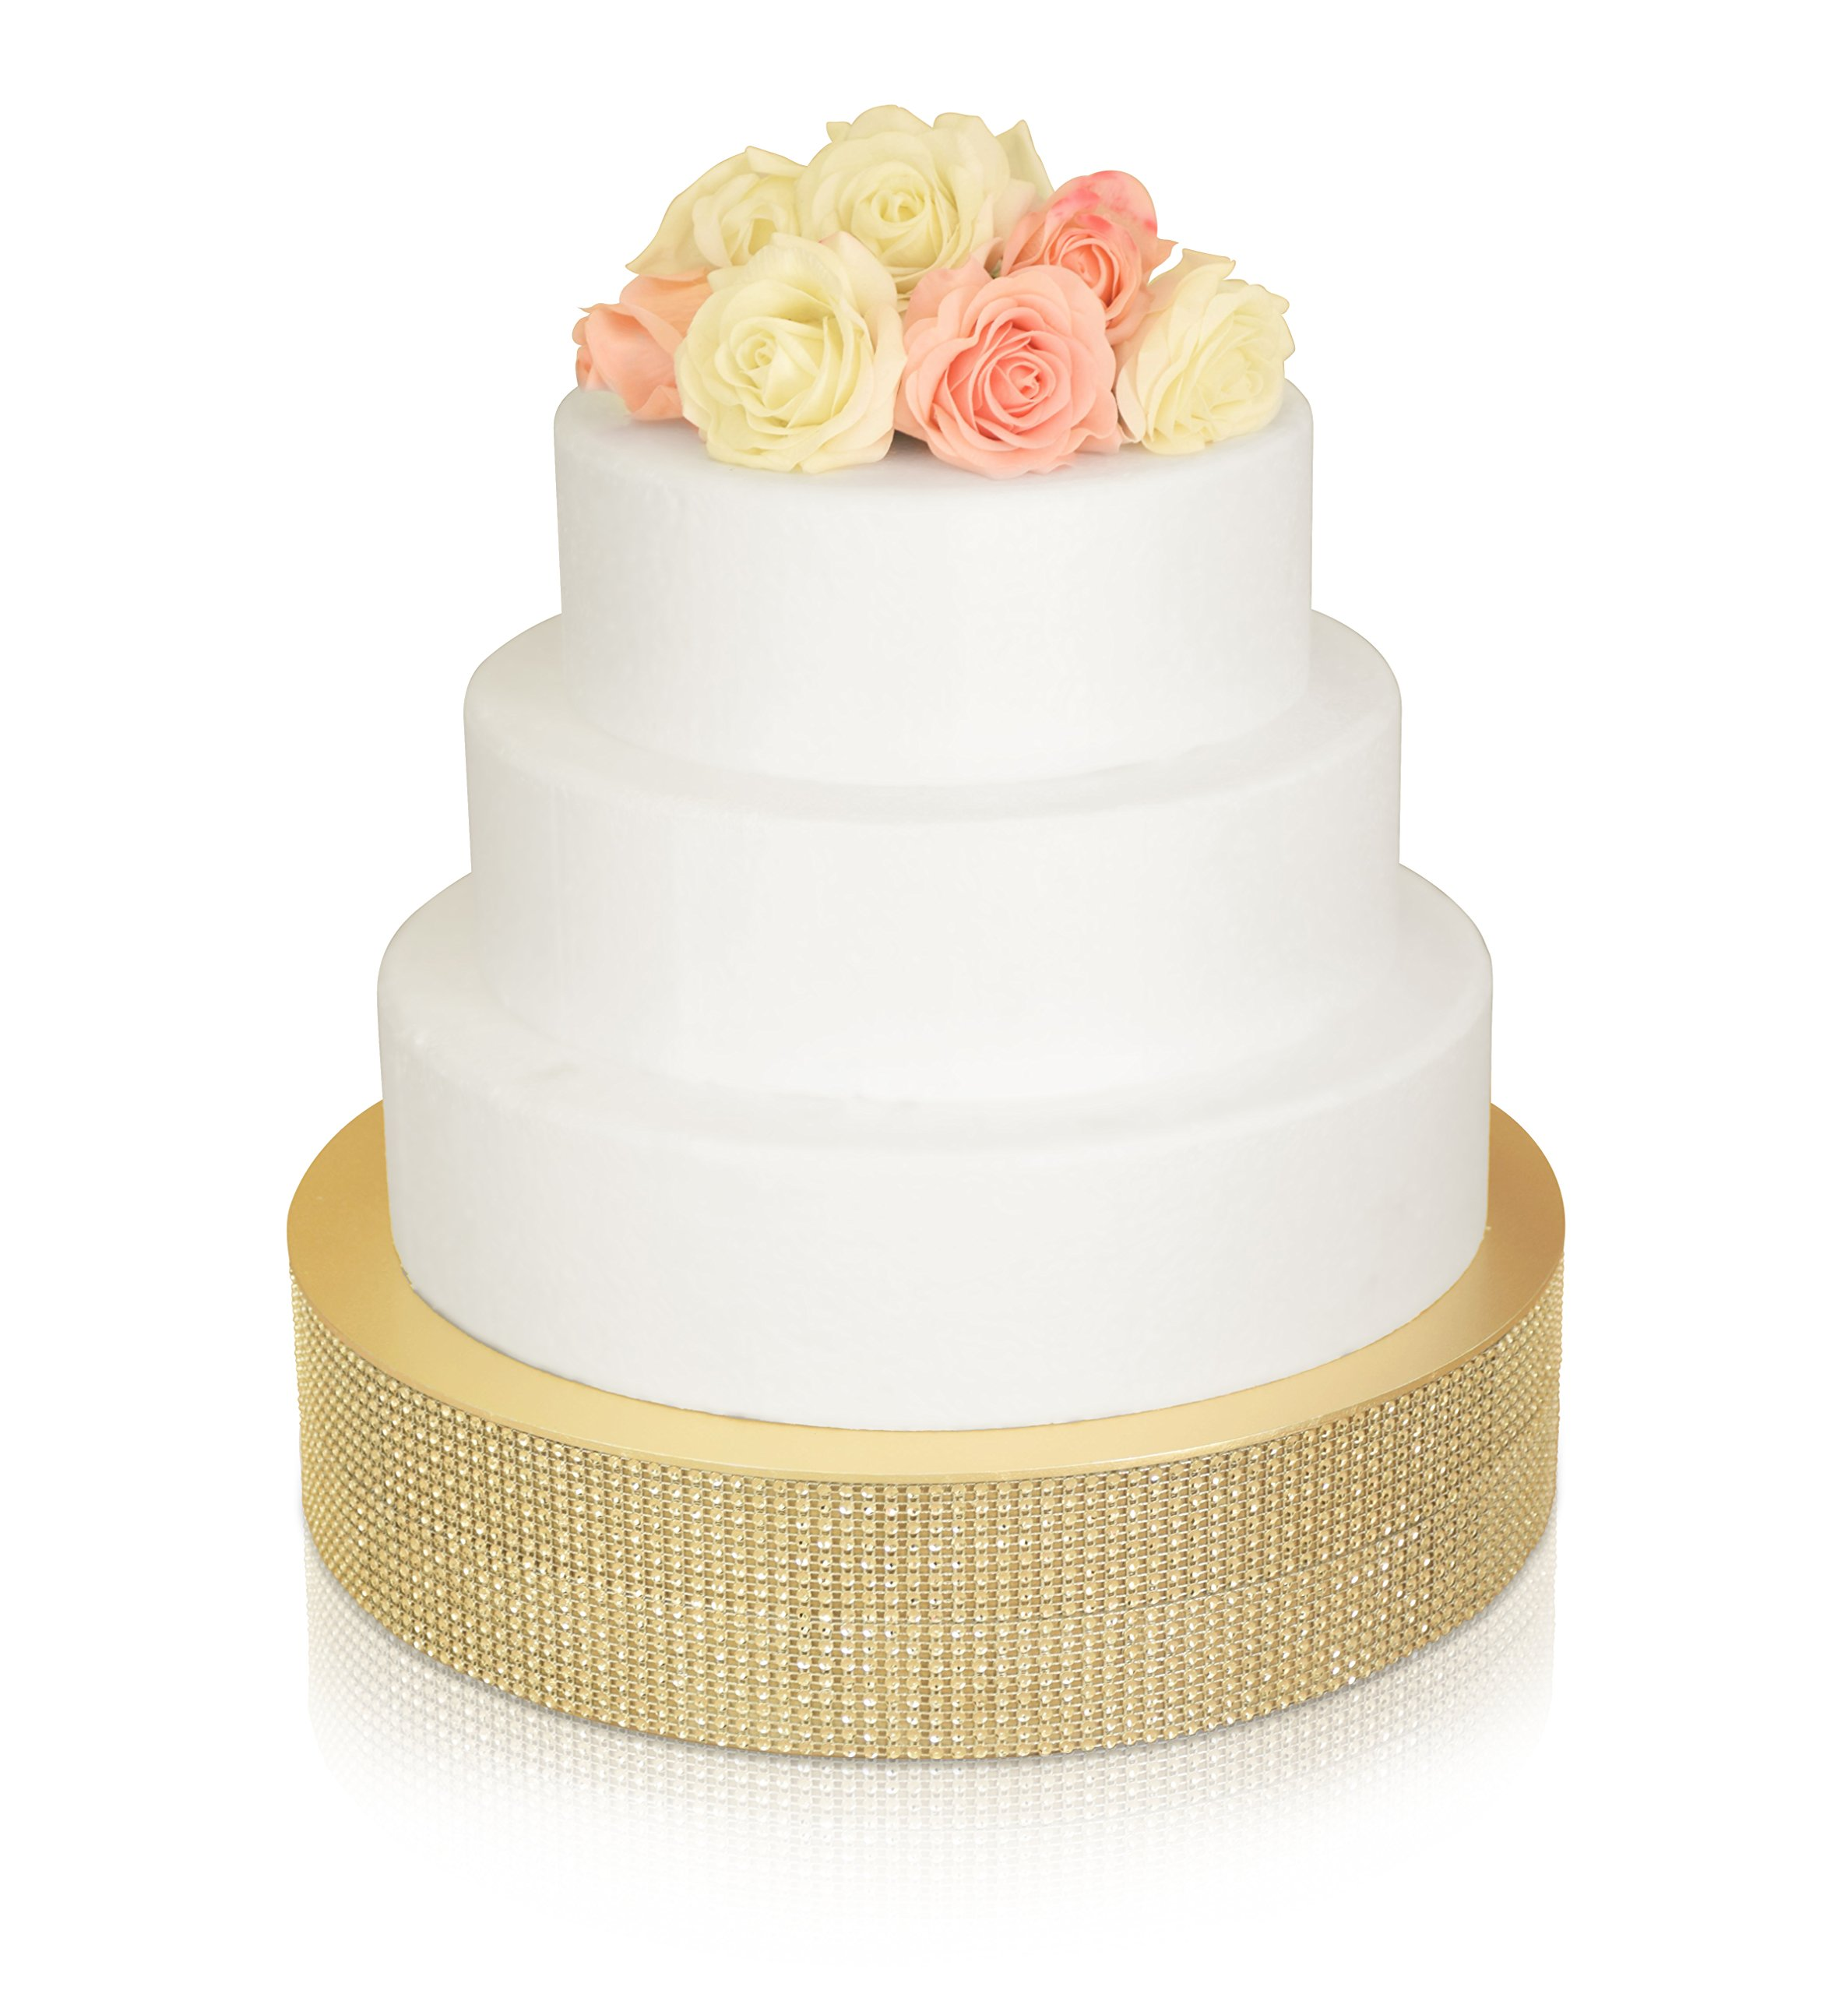 '' OCCASIONS'' Bling Wedding Cake Stand (holds 150 lbs) Cupcake Base, Decorative Centerpiece for Parties (16'' Round, Soft Gold)